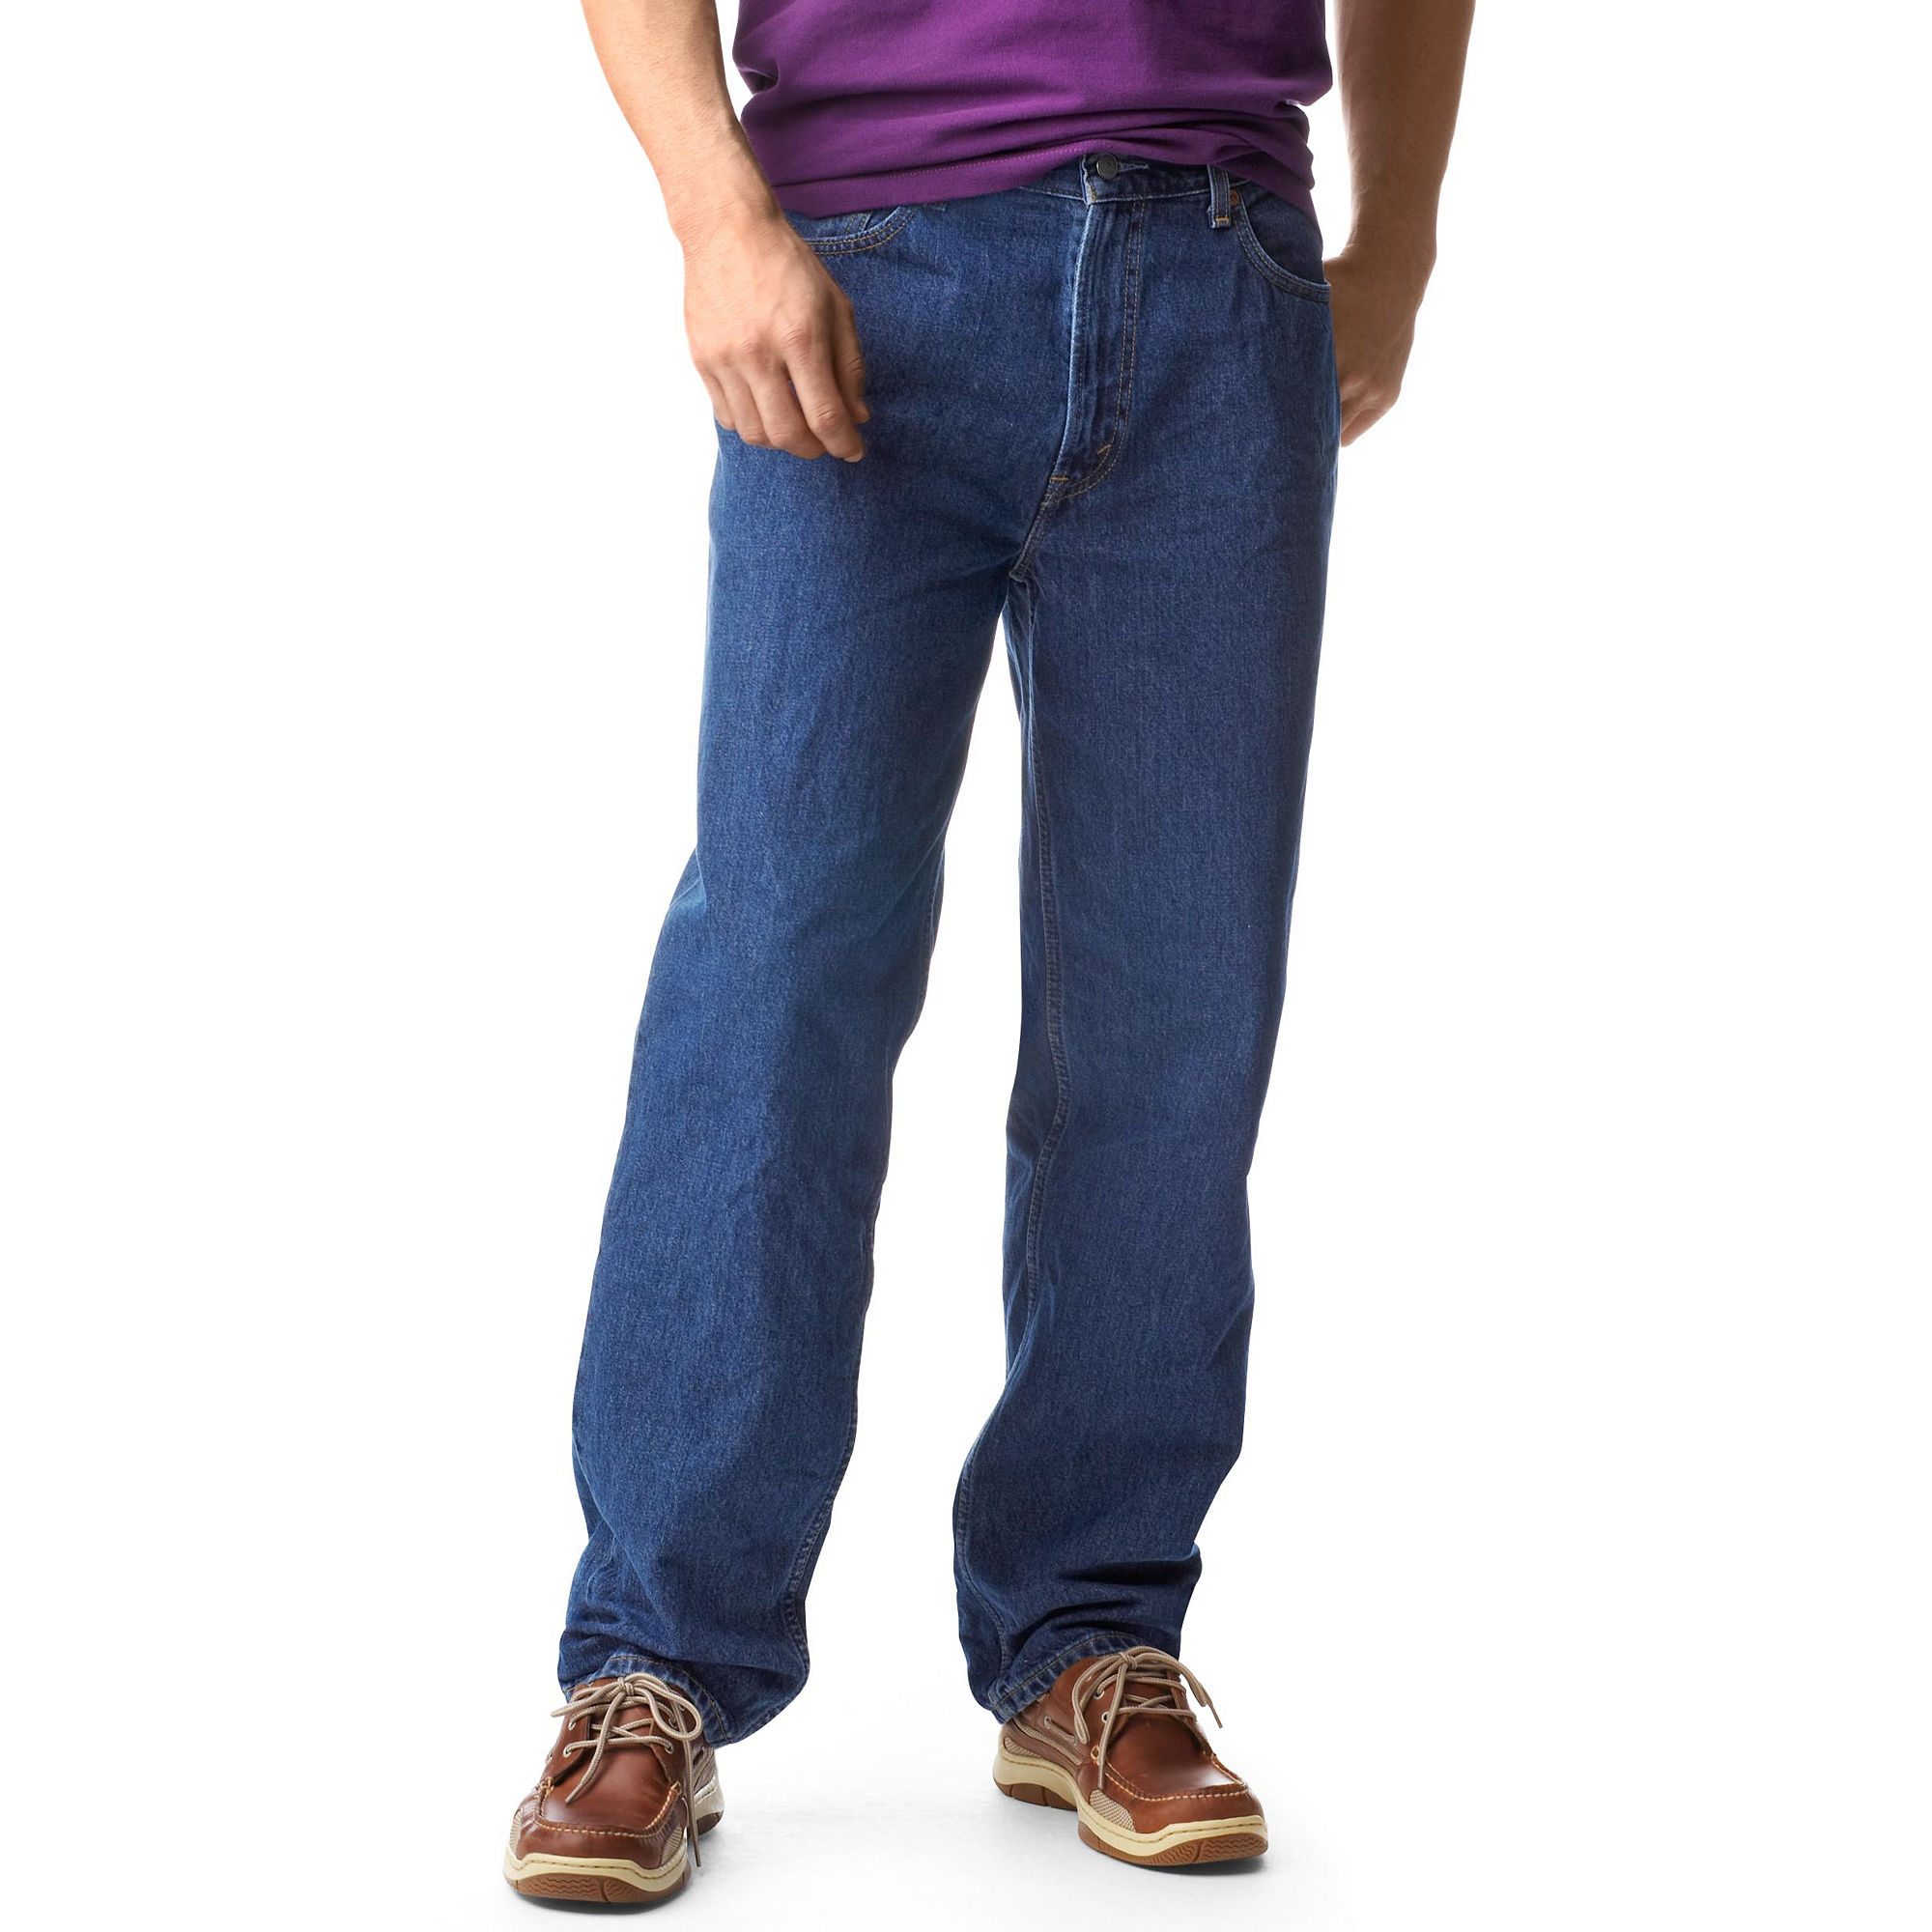 "Levi's 560"" Comfort Fit Jeans-Big & Tall"